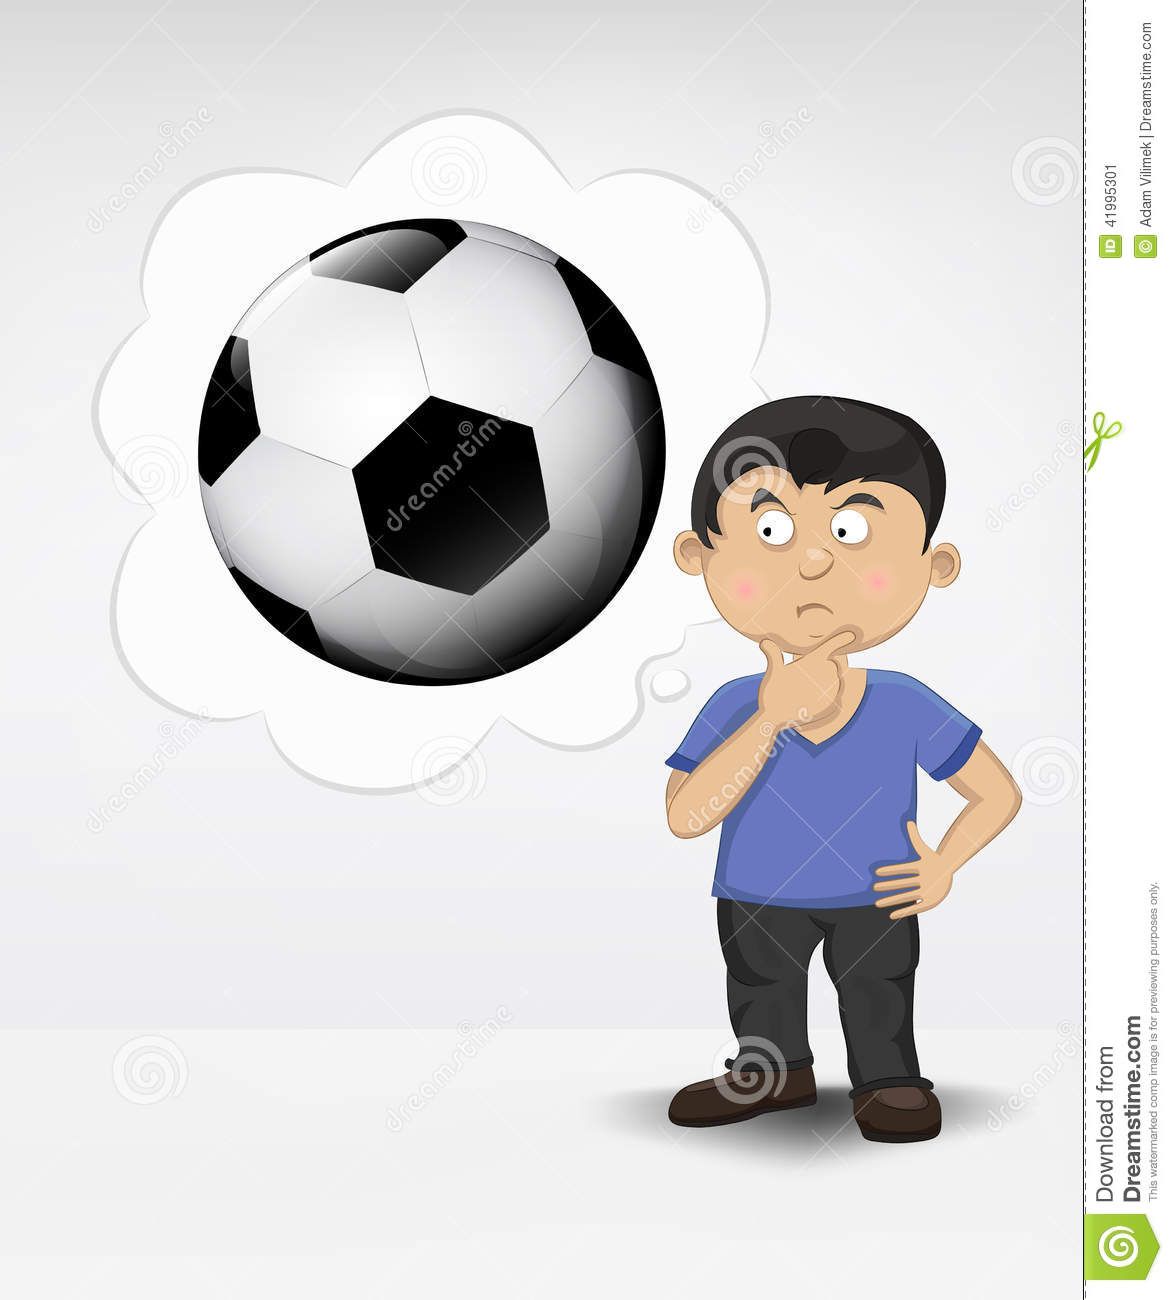 Standing young boy thinking about soccer ball stock illustration